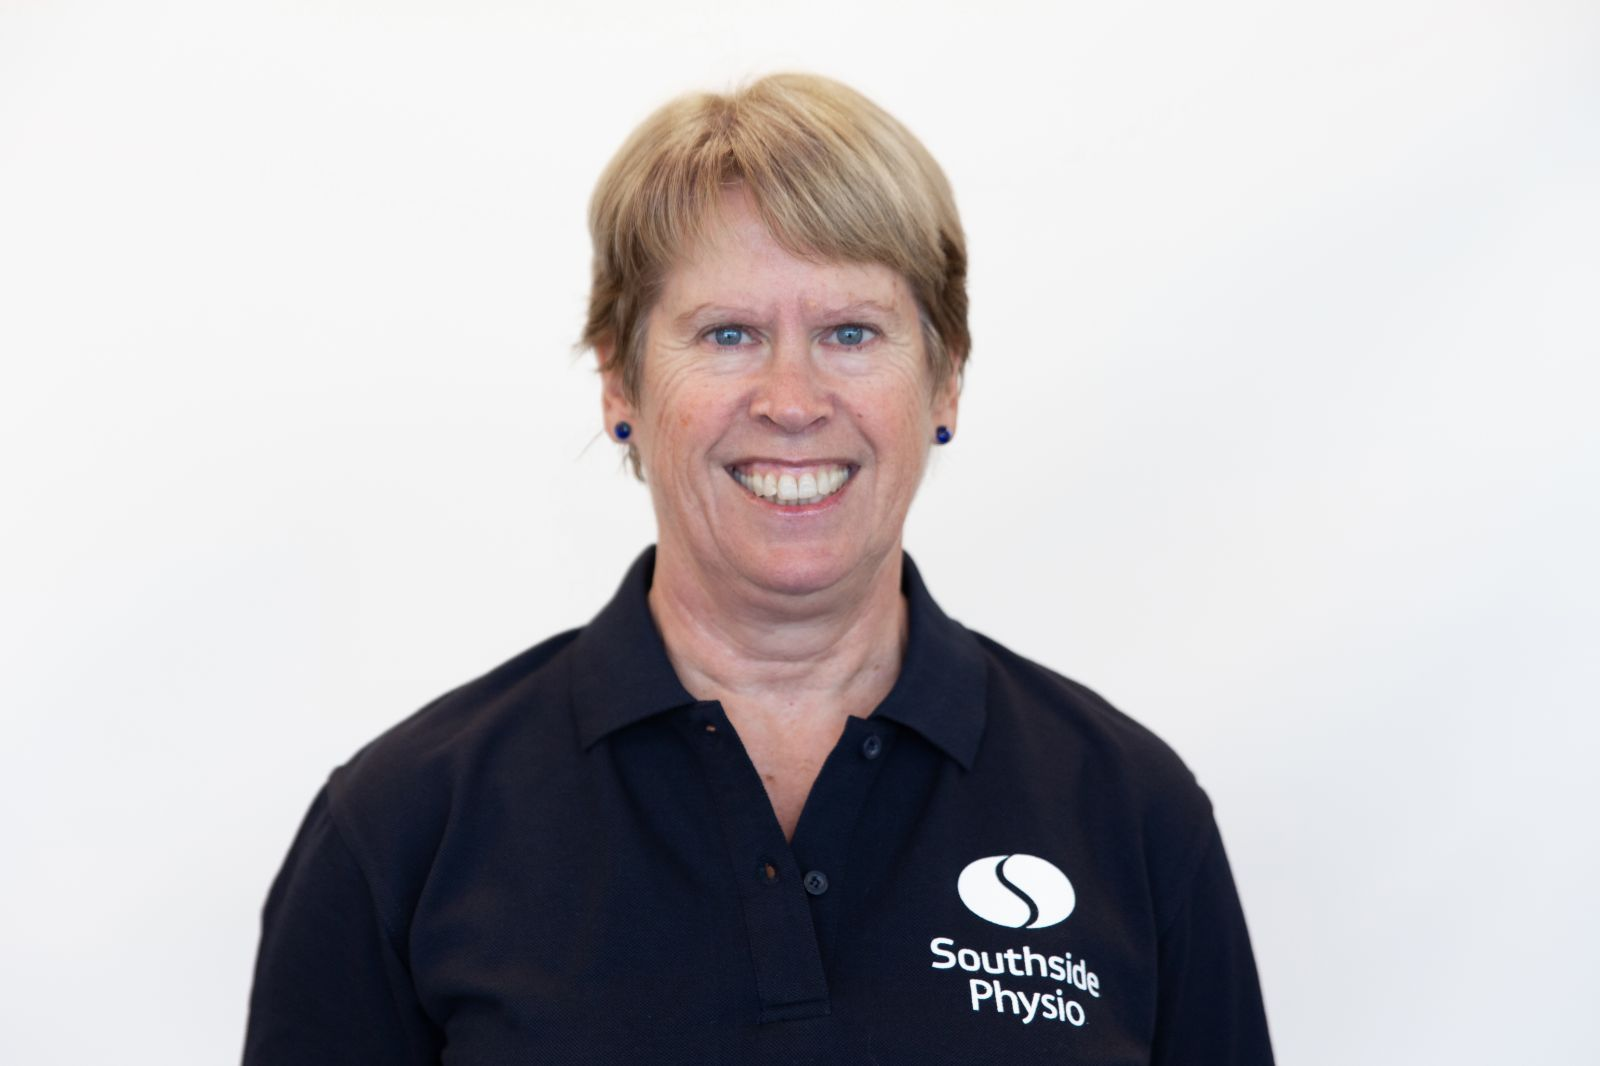 HEATHER BOND - Southside Physio, Woden